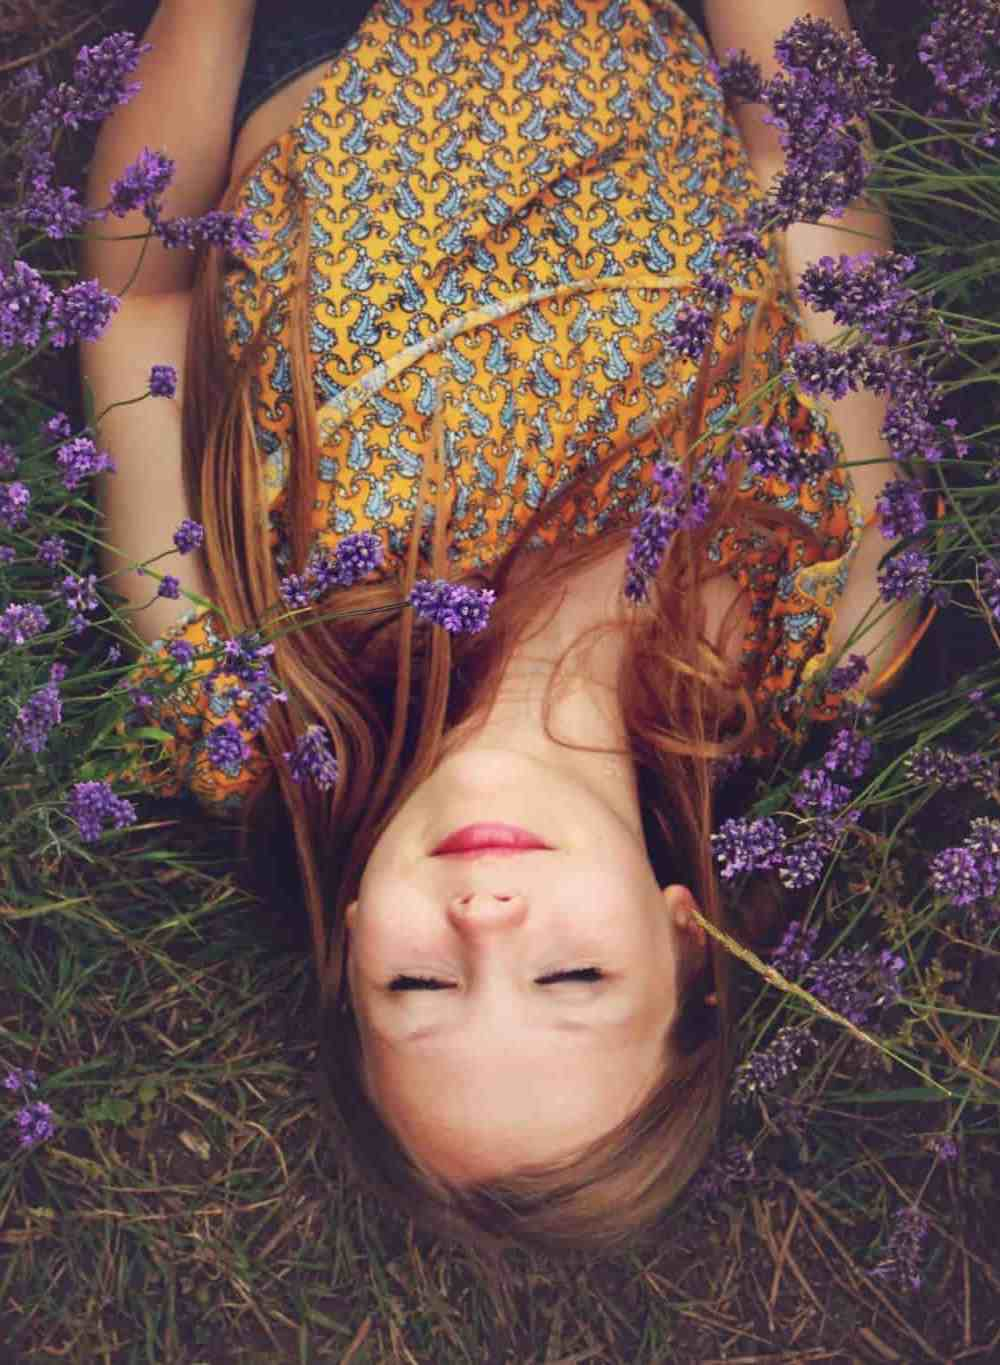 A young woman laying in the grass with purple flowers